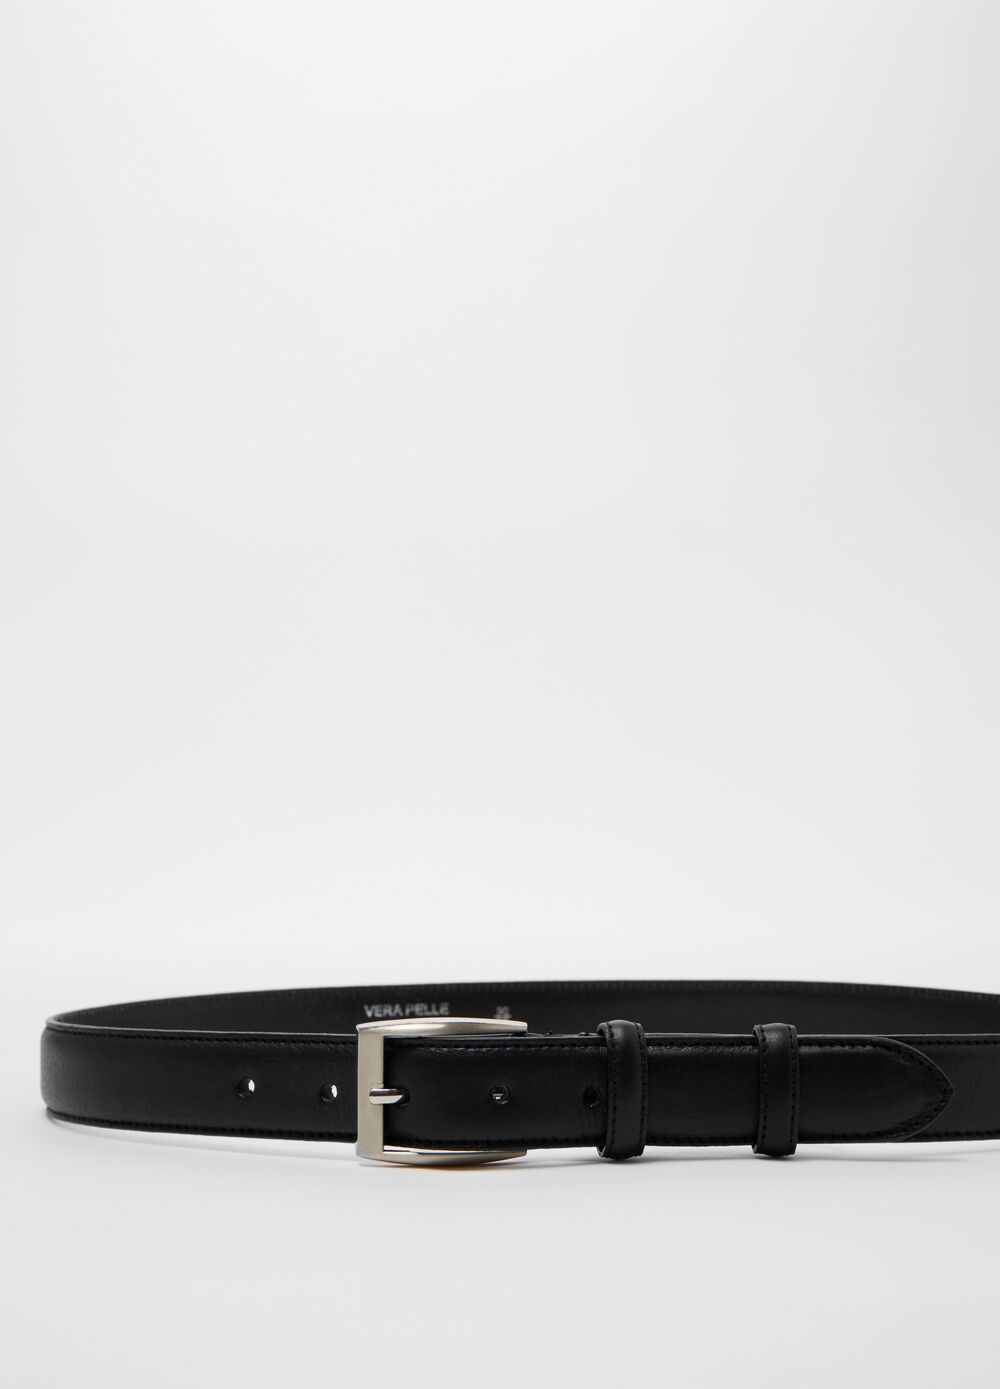 Real leather belt with square buckle